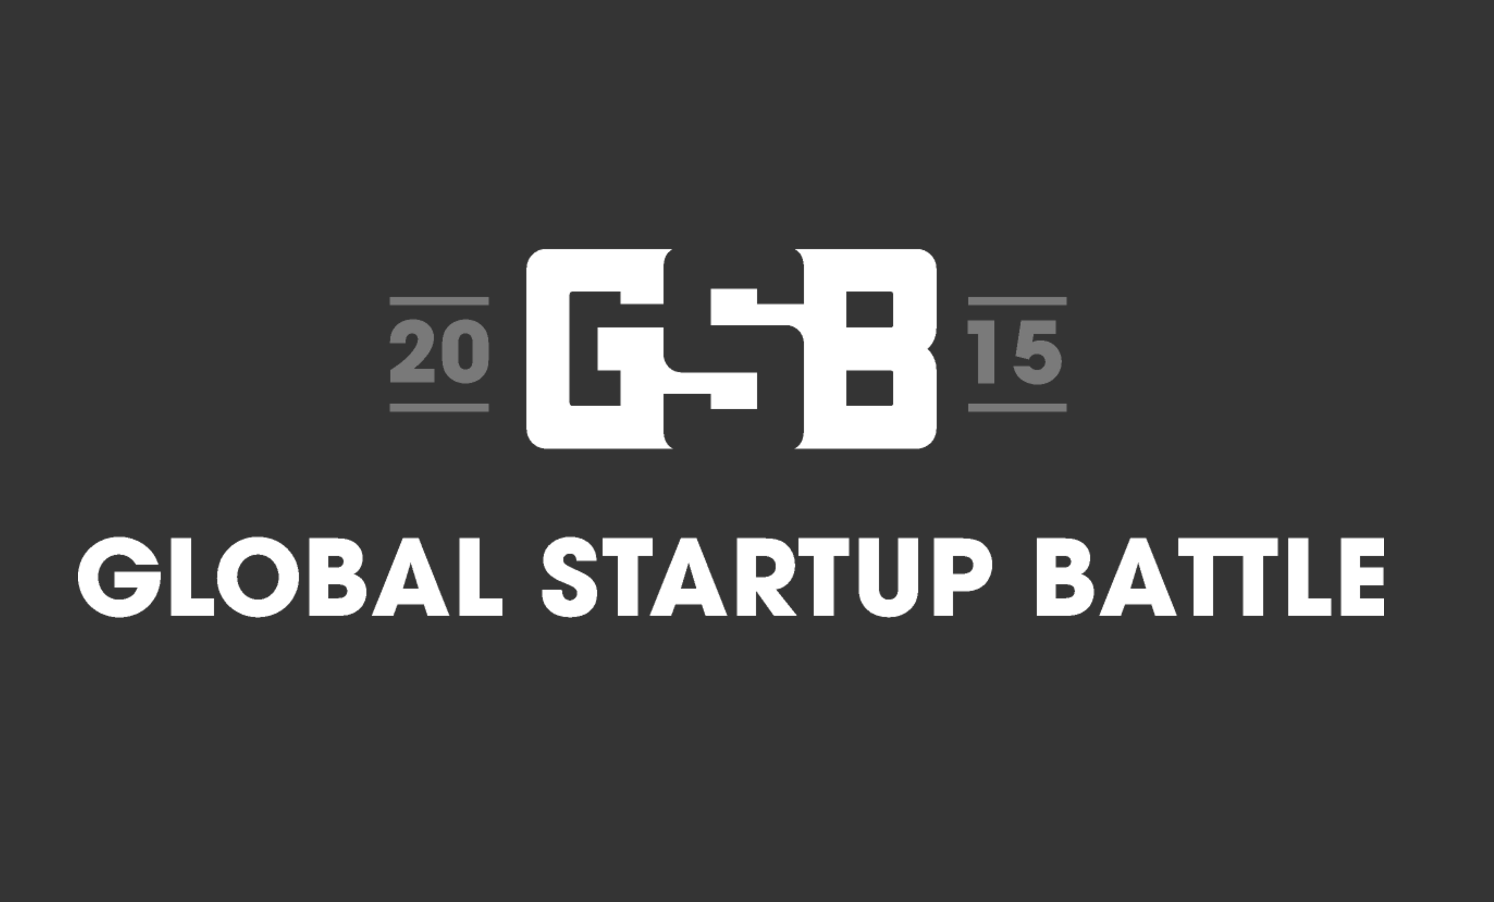 Support Our Local Global Startup Battle Teams